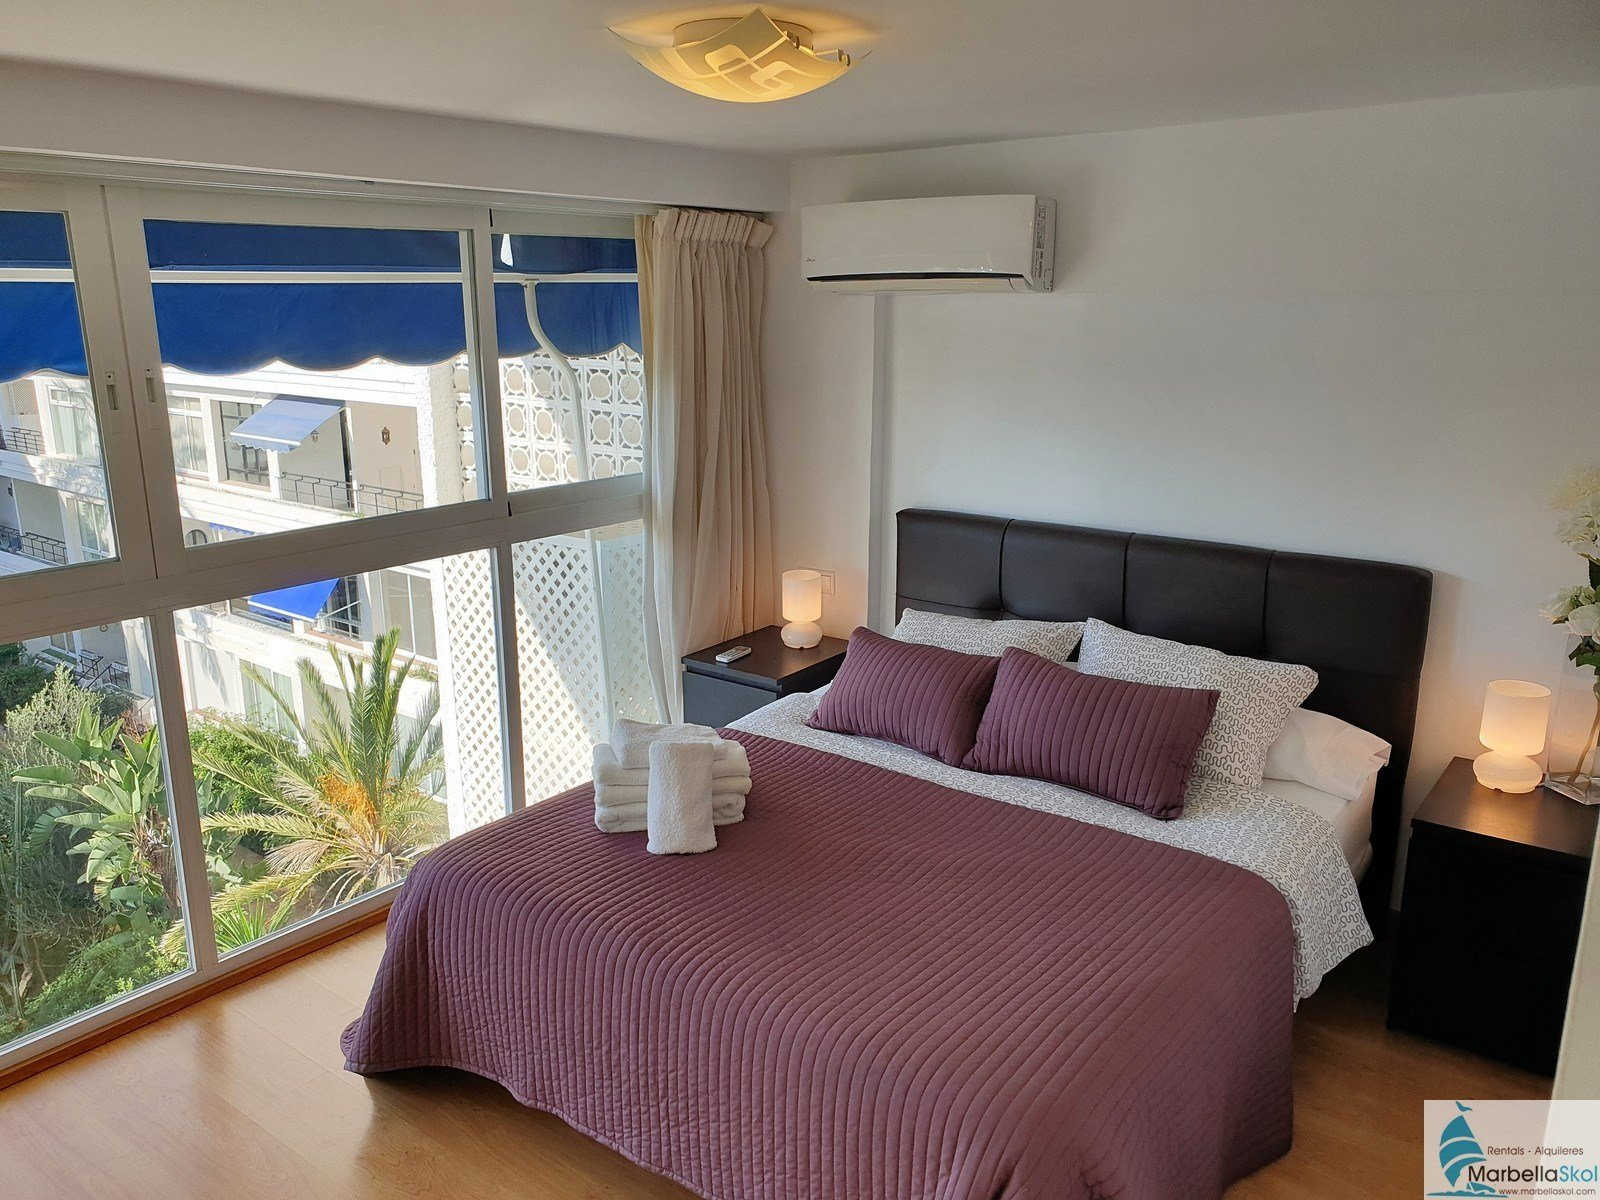 Best 2 Bedroom Duplex Apartment 206 In Skol For Rent – Marbella With Pictures